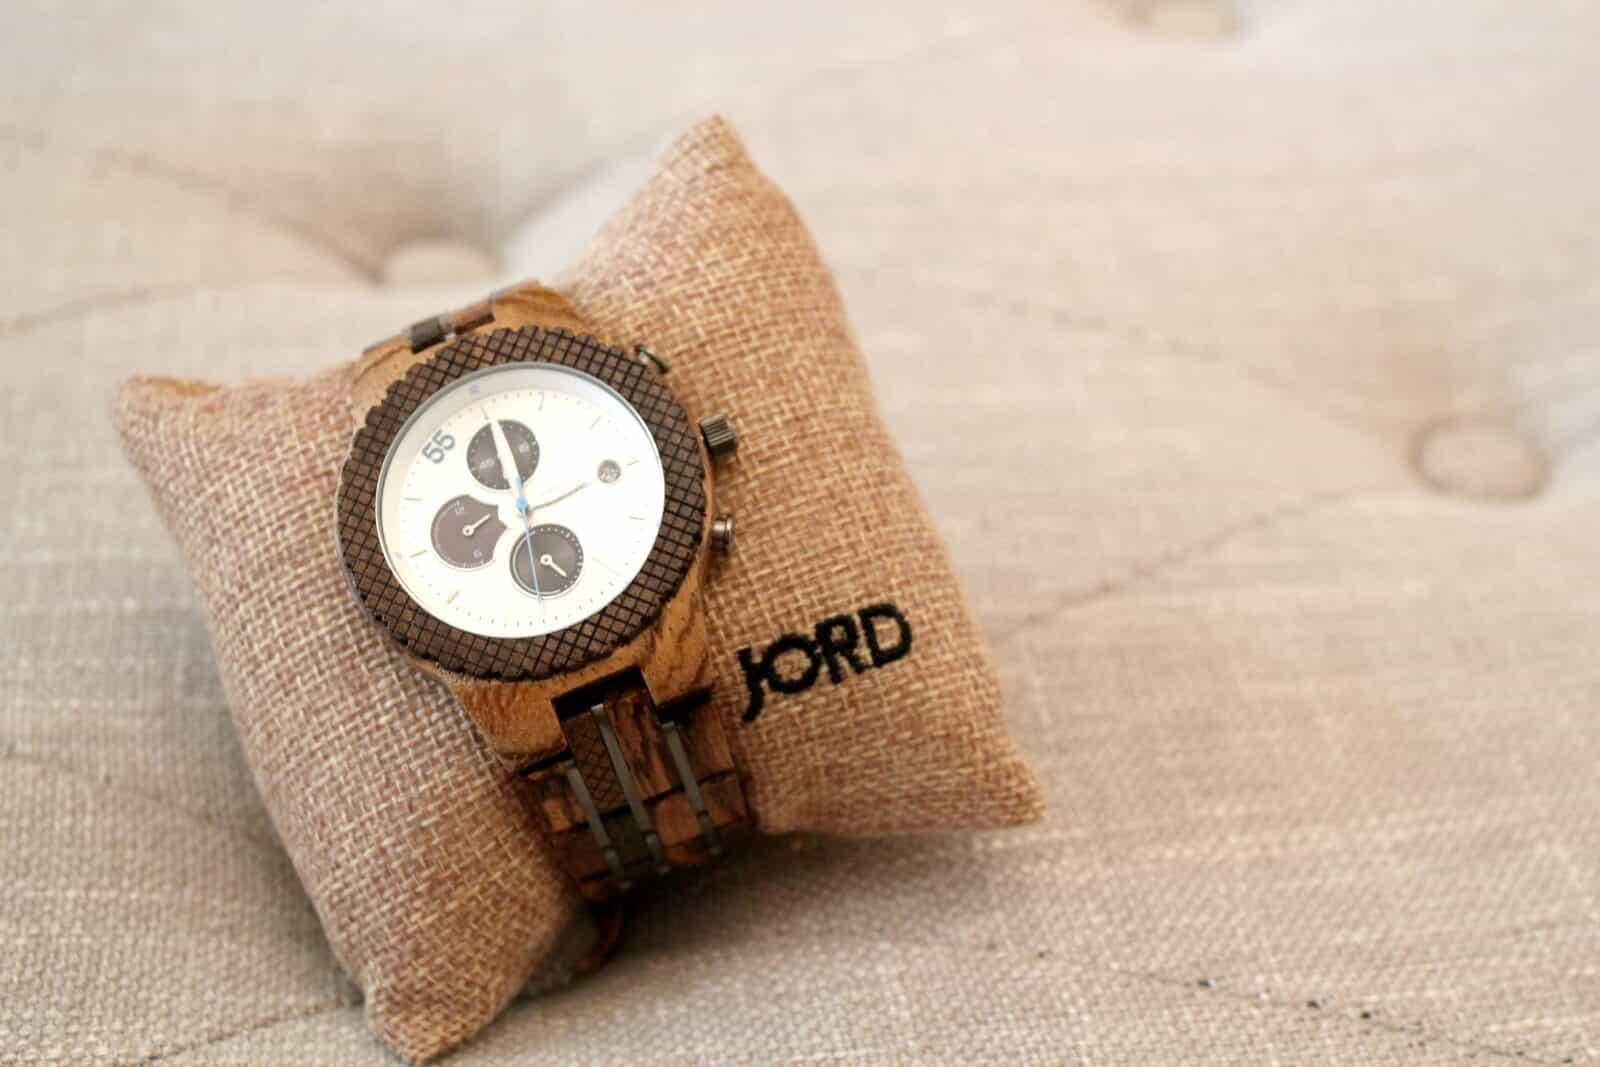 In Search of Signs of Spring (+ a Free JORD Watch Giveaway!)